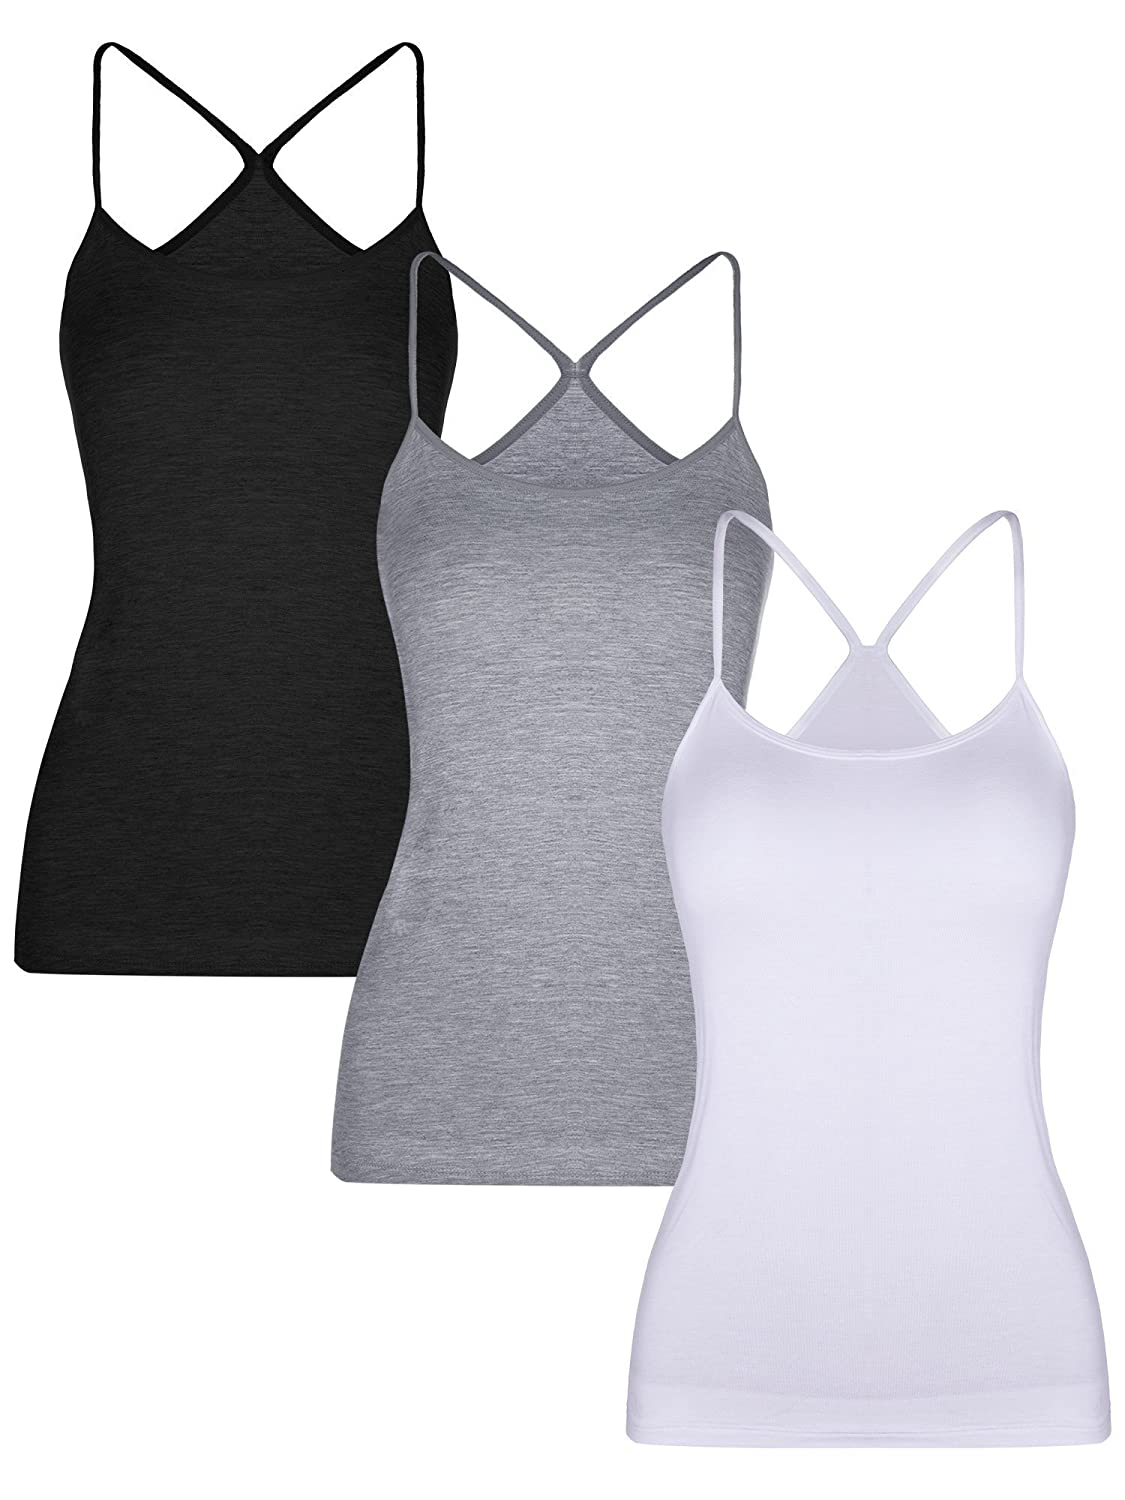 BOAO 3 Pieces Women Camisoles Seamless Basic Stretch Cami with Y-Back Spaghetti Strap Tank Tops, 3 Colors